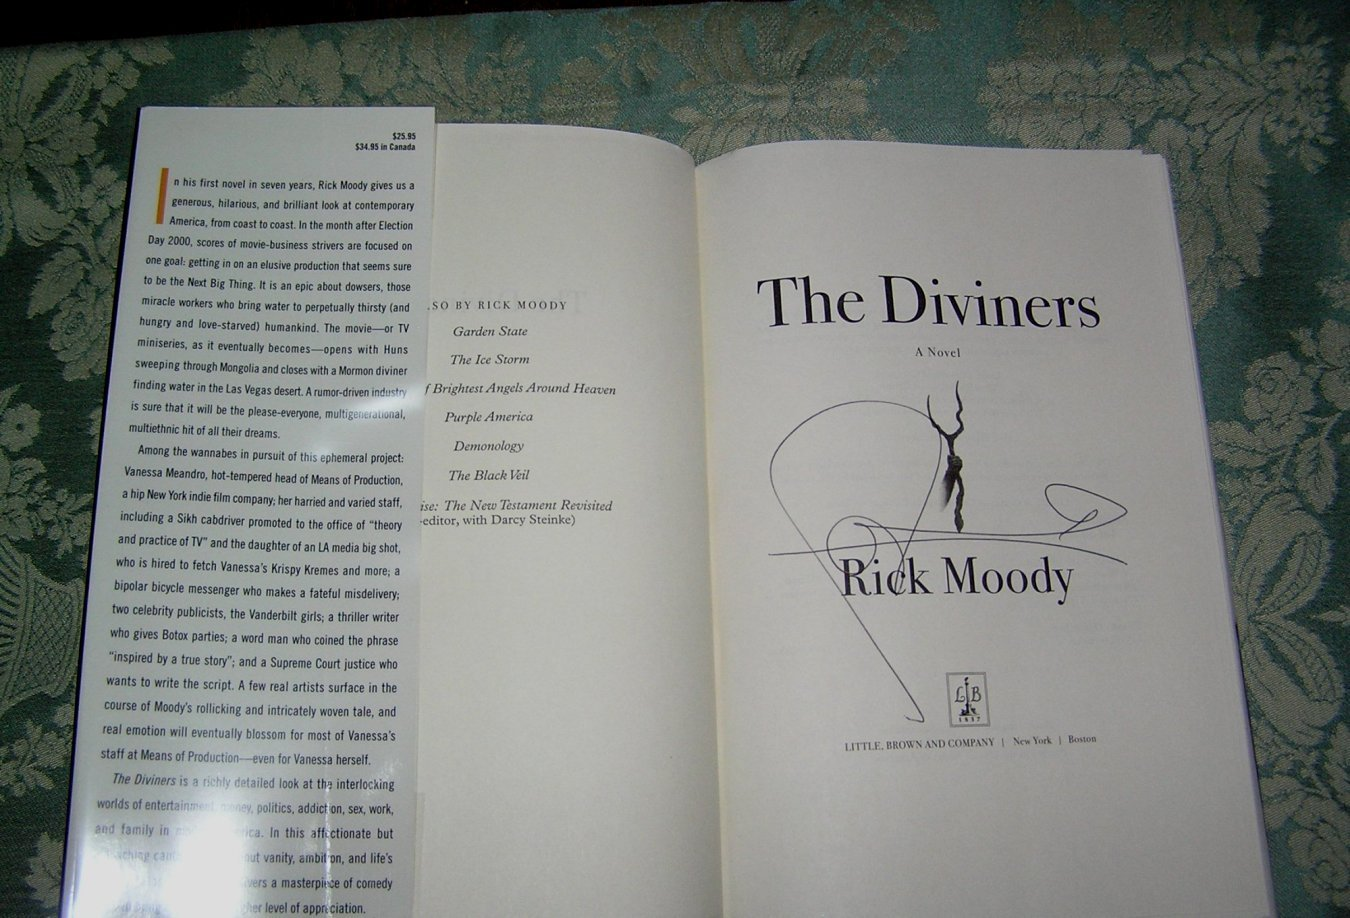 a review of demonology stories by rick moody The best way to approach demonology, rick moody's new collection of short stories, is to start with the eponymous final piece and then proceed cautiously toward the front.